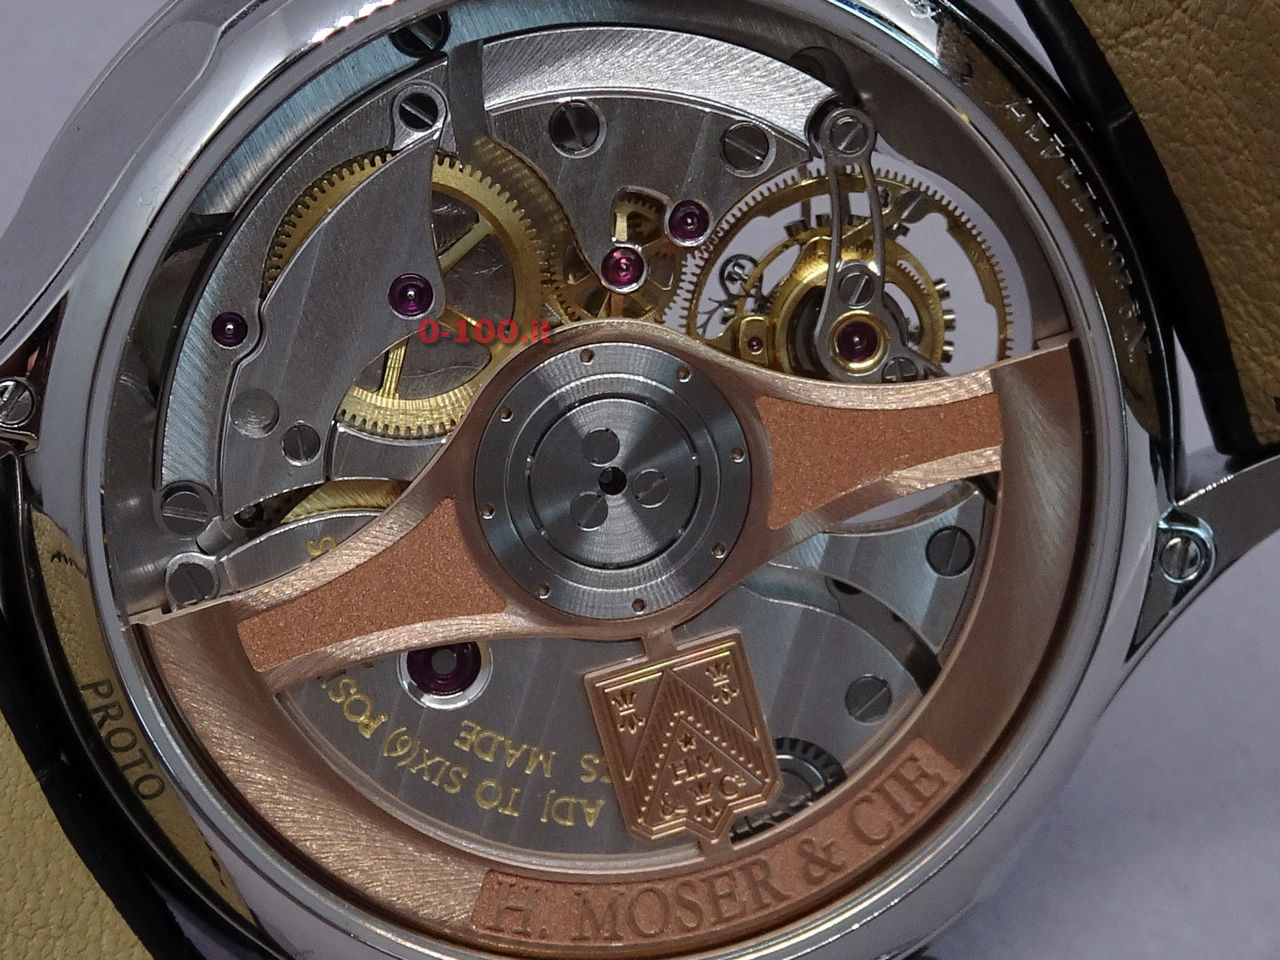 BASELWORLD-2016-moser-cie-tourbillon_0-100_10